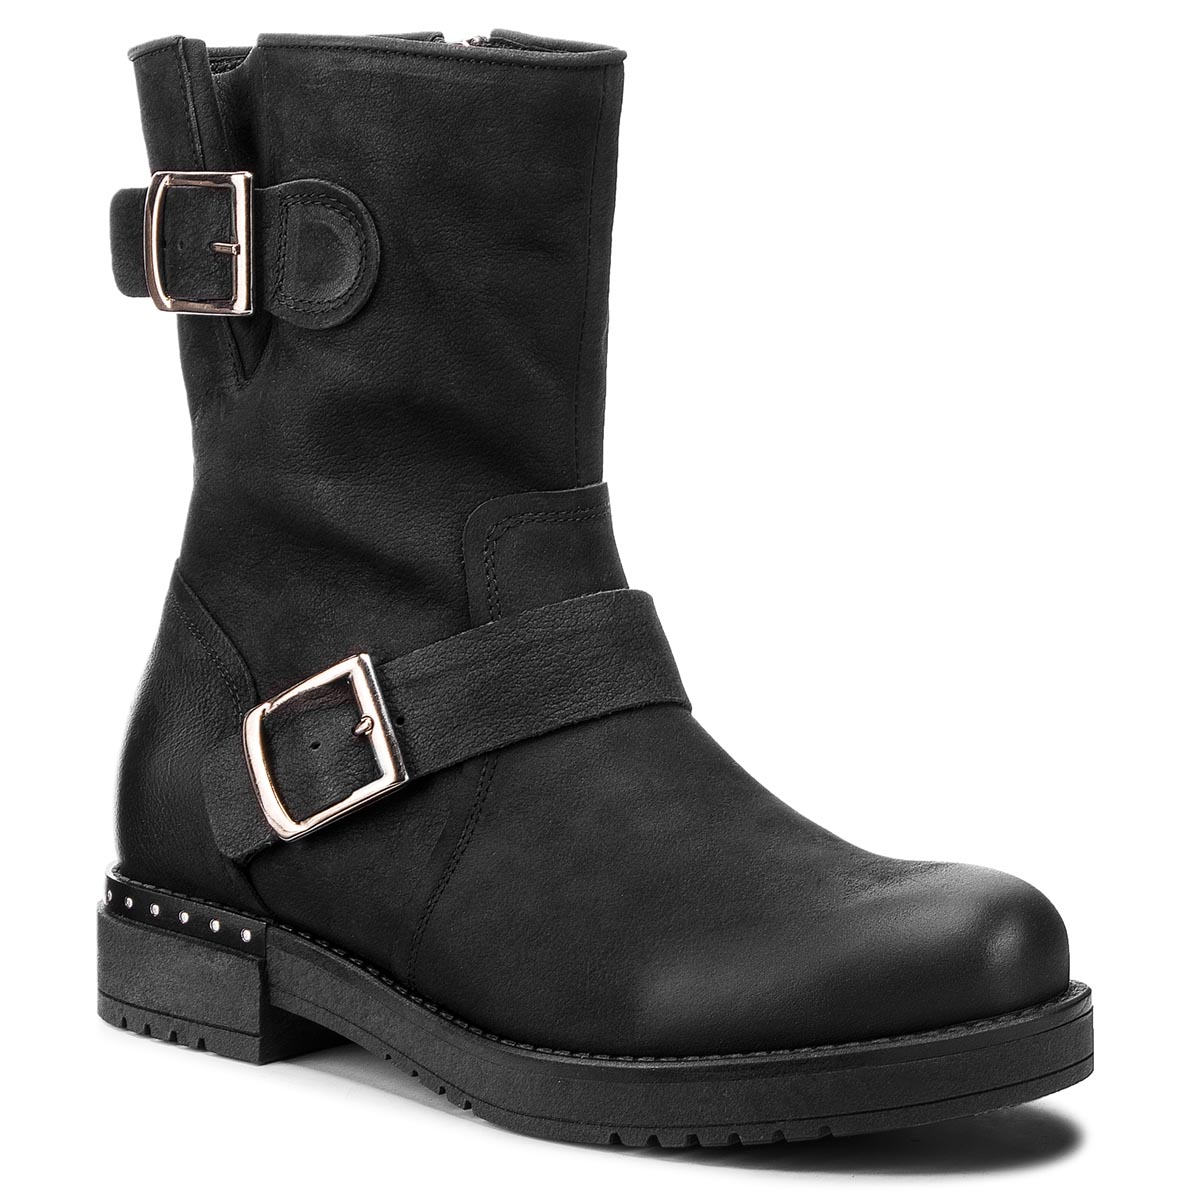 Bottines EDEO - 3242-376 Noir